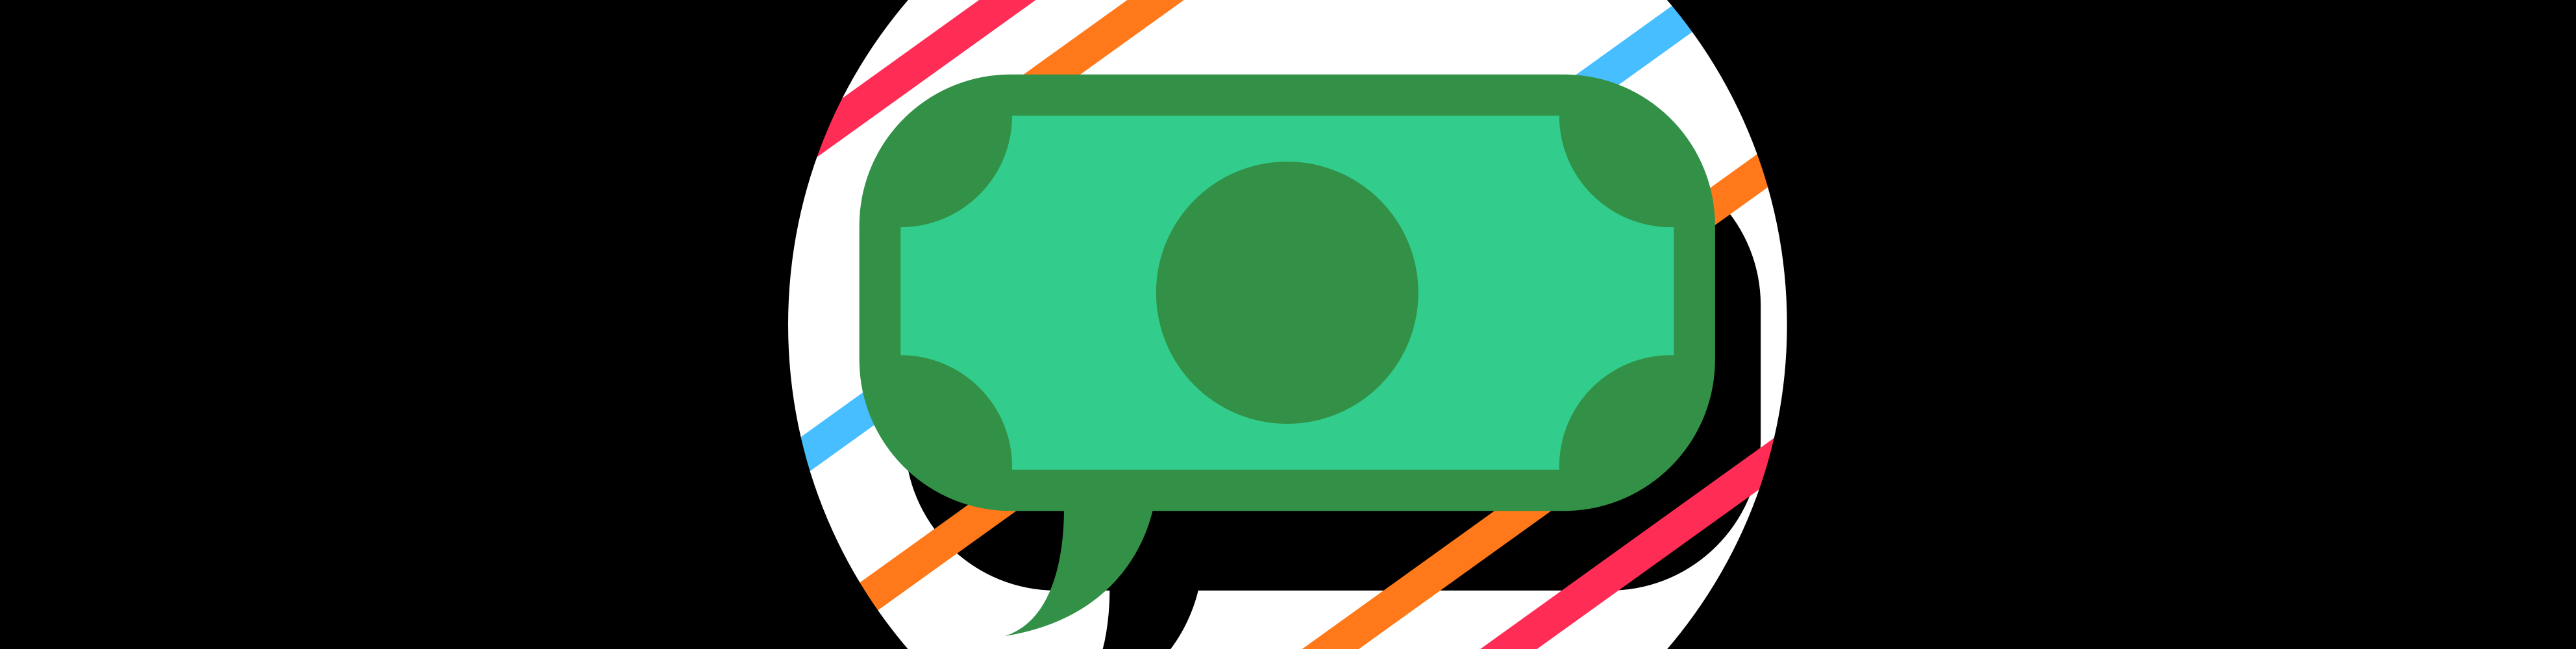 Illustrated chat bubble with a dollar